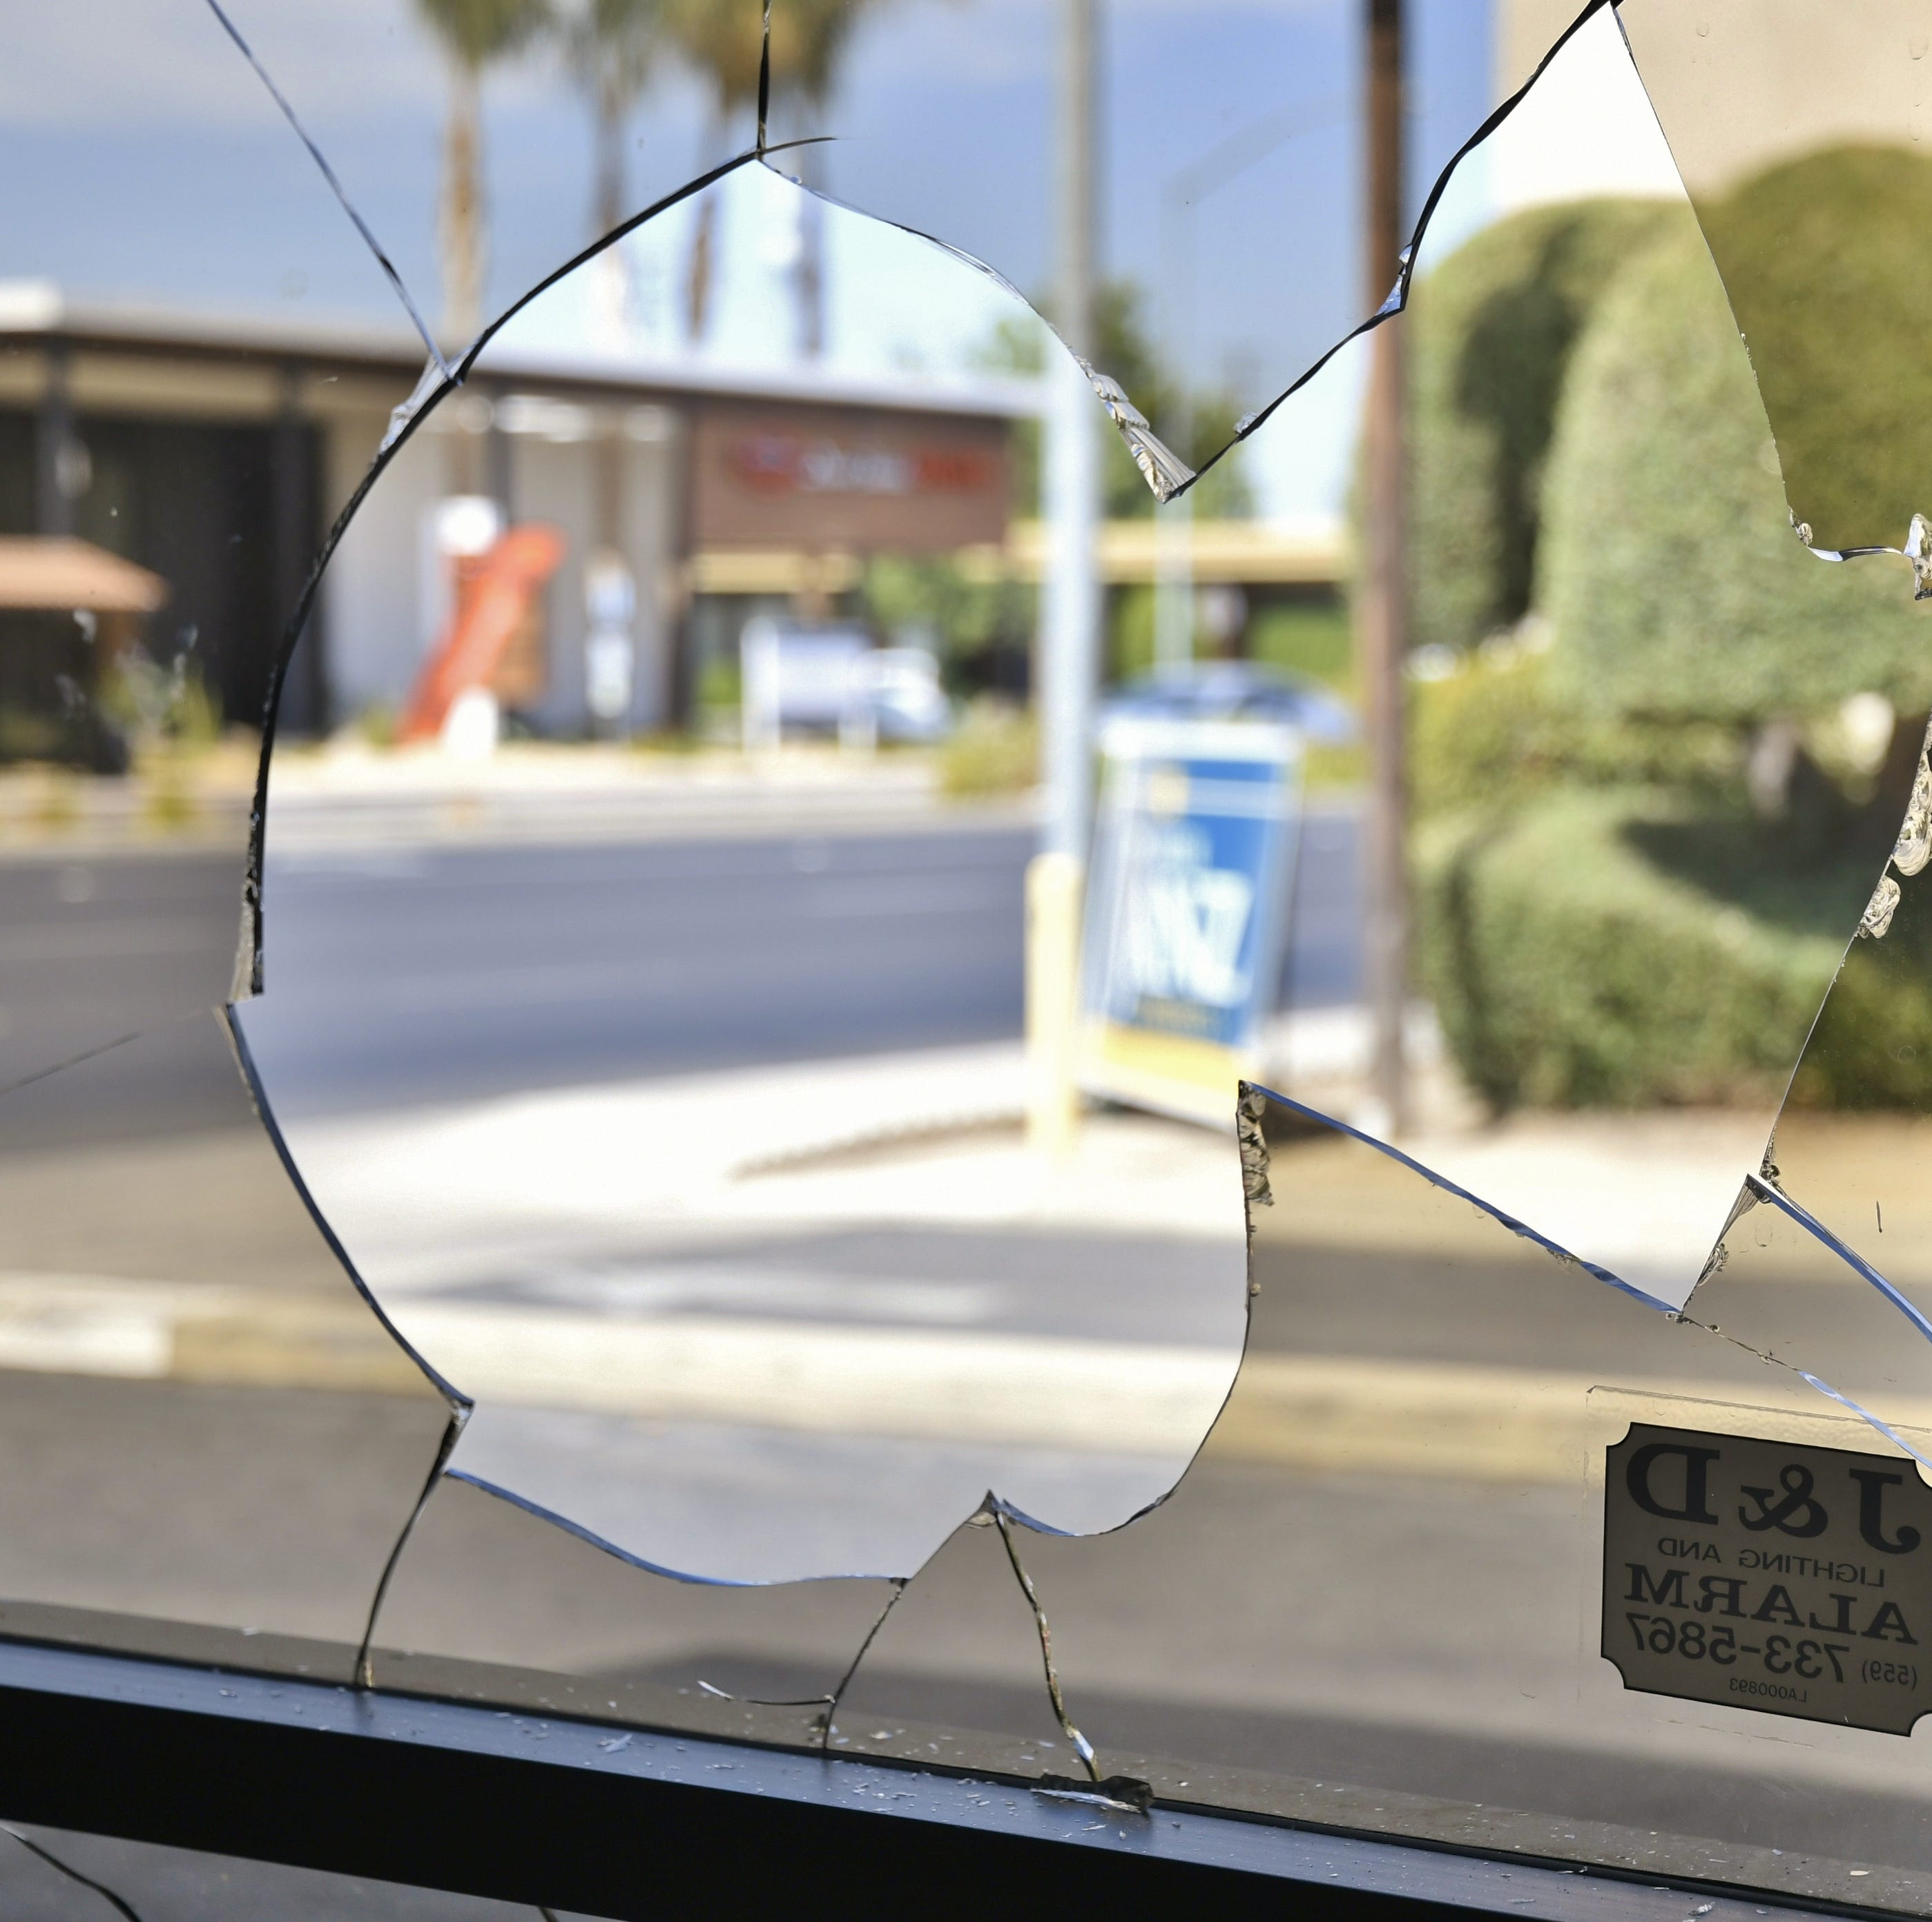 Andrew Janz 'won't back down' after Visalia headquarters vandalized